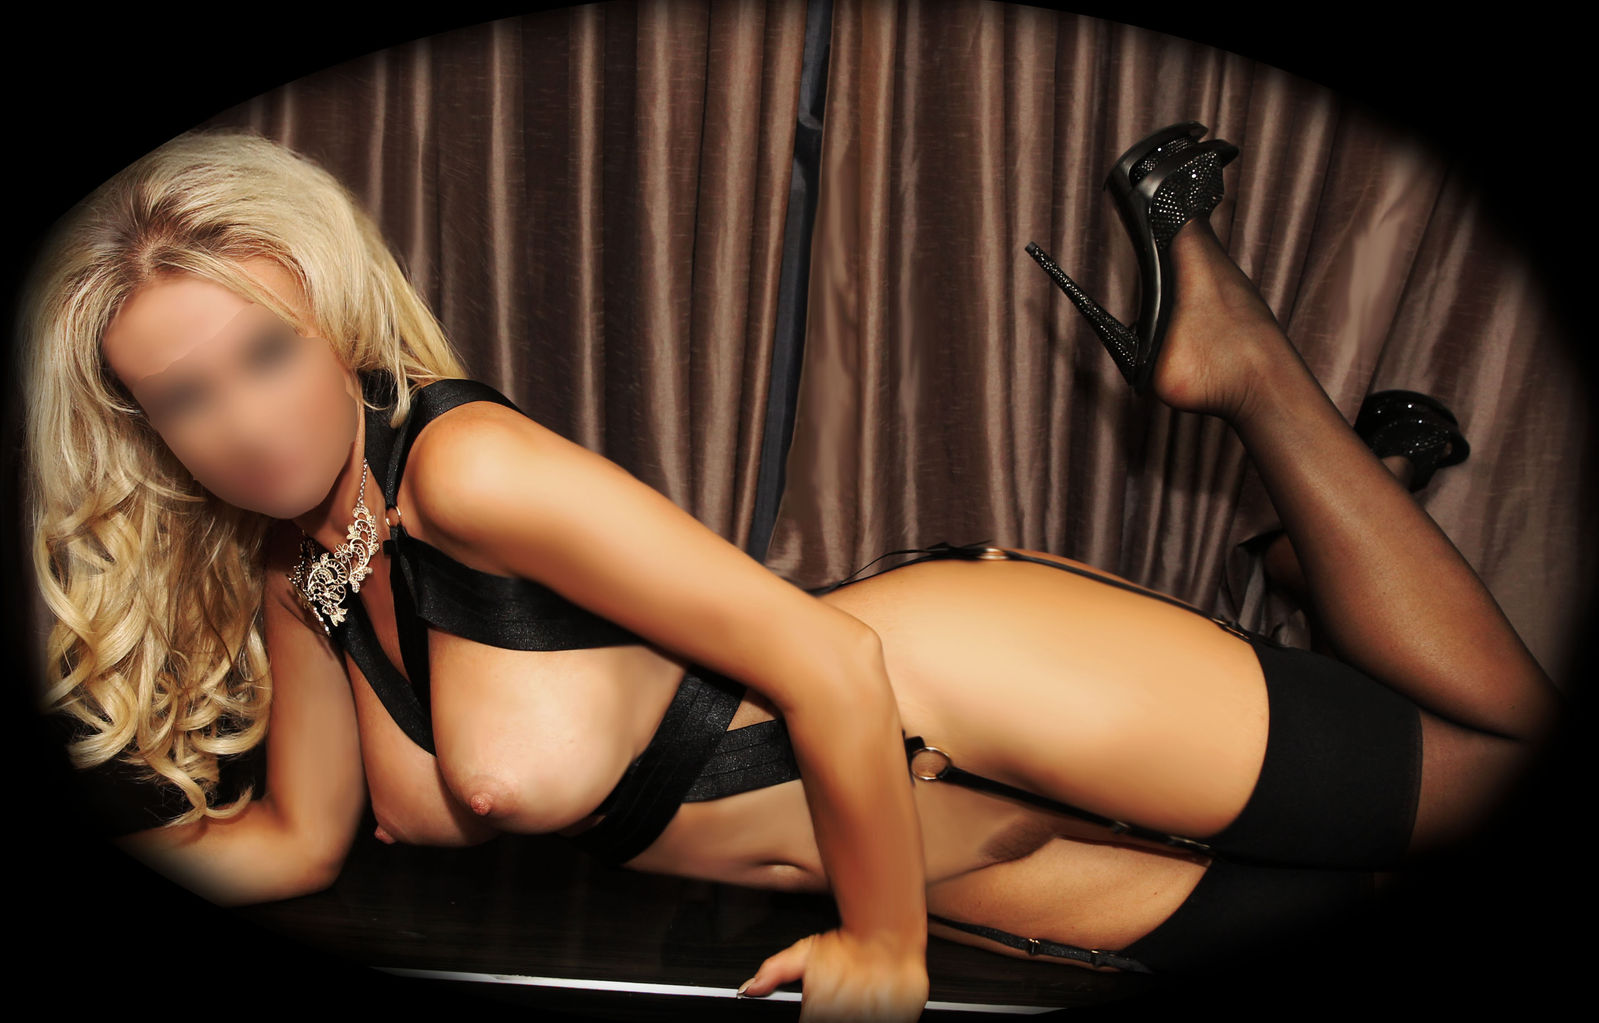 nsw private escorts adult classifides